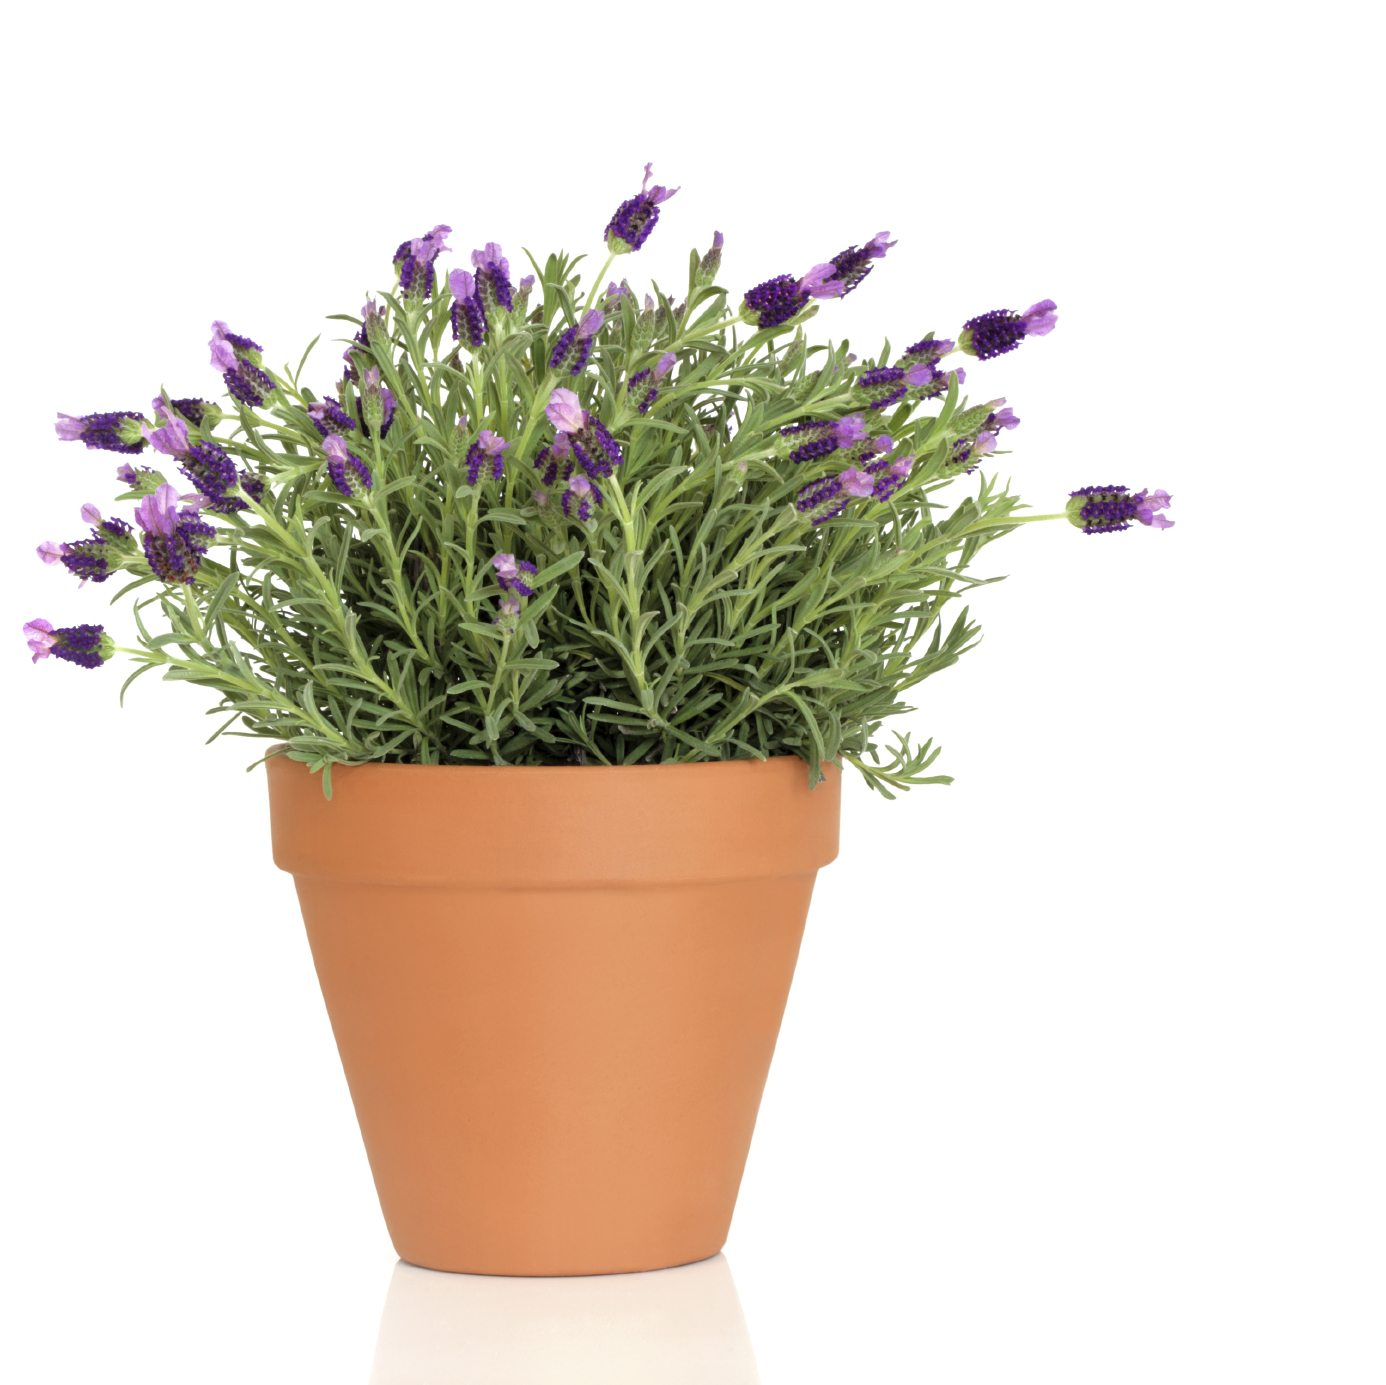 Potted lavender care how to grow lavender in containers - Growing lavender pot ...